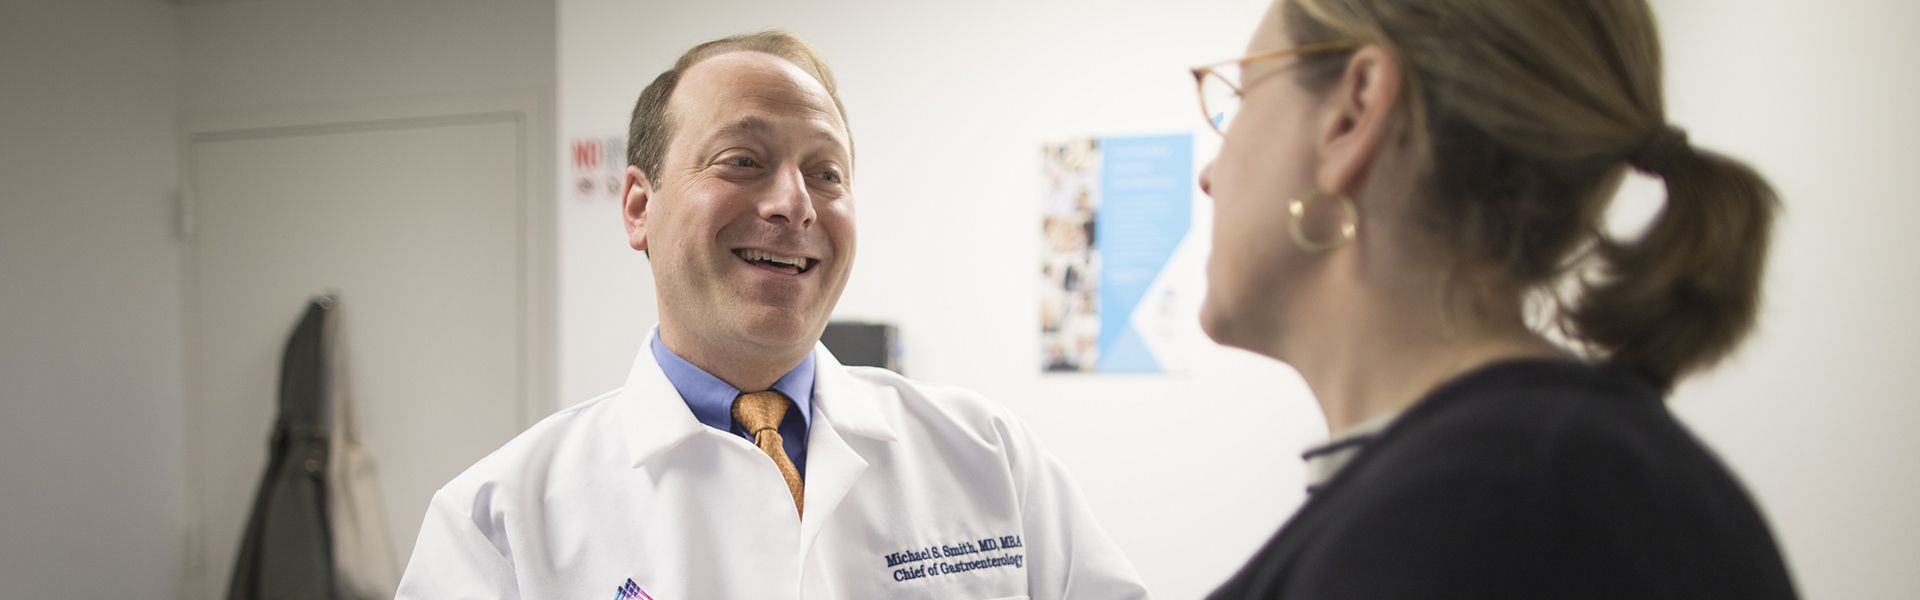 Dr. Michael Smith talks to a patient with motility issues